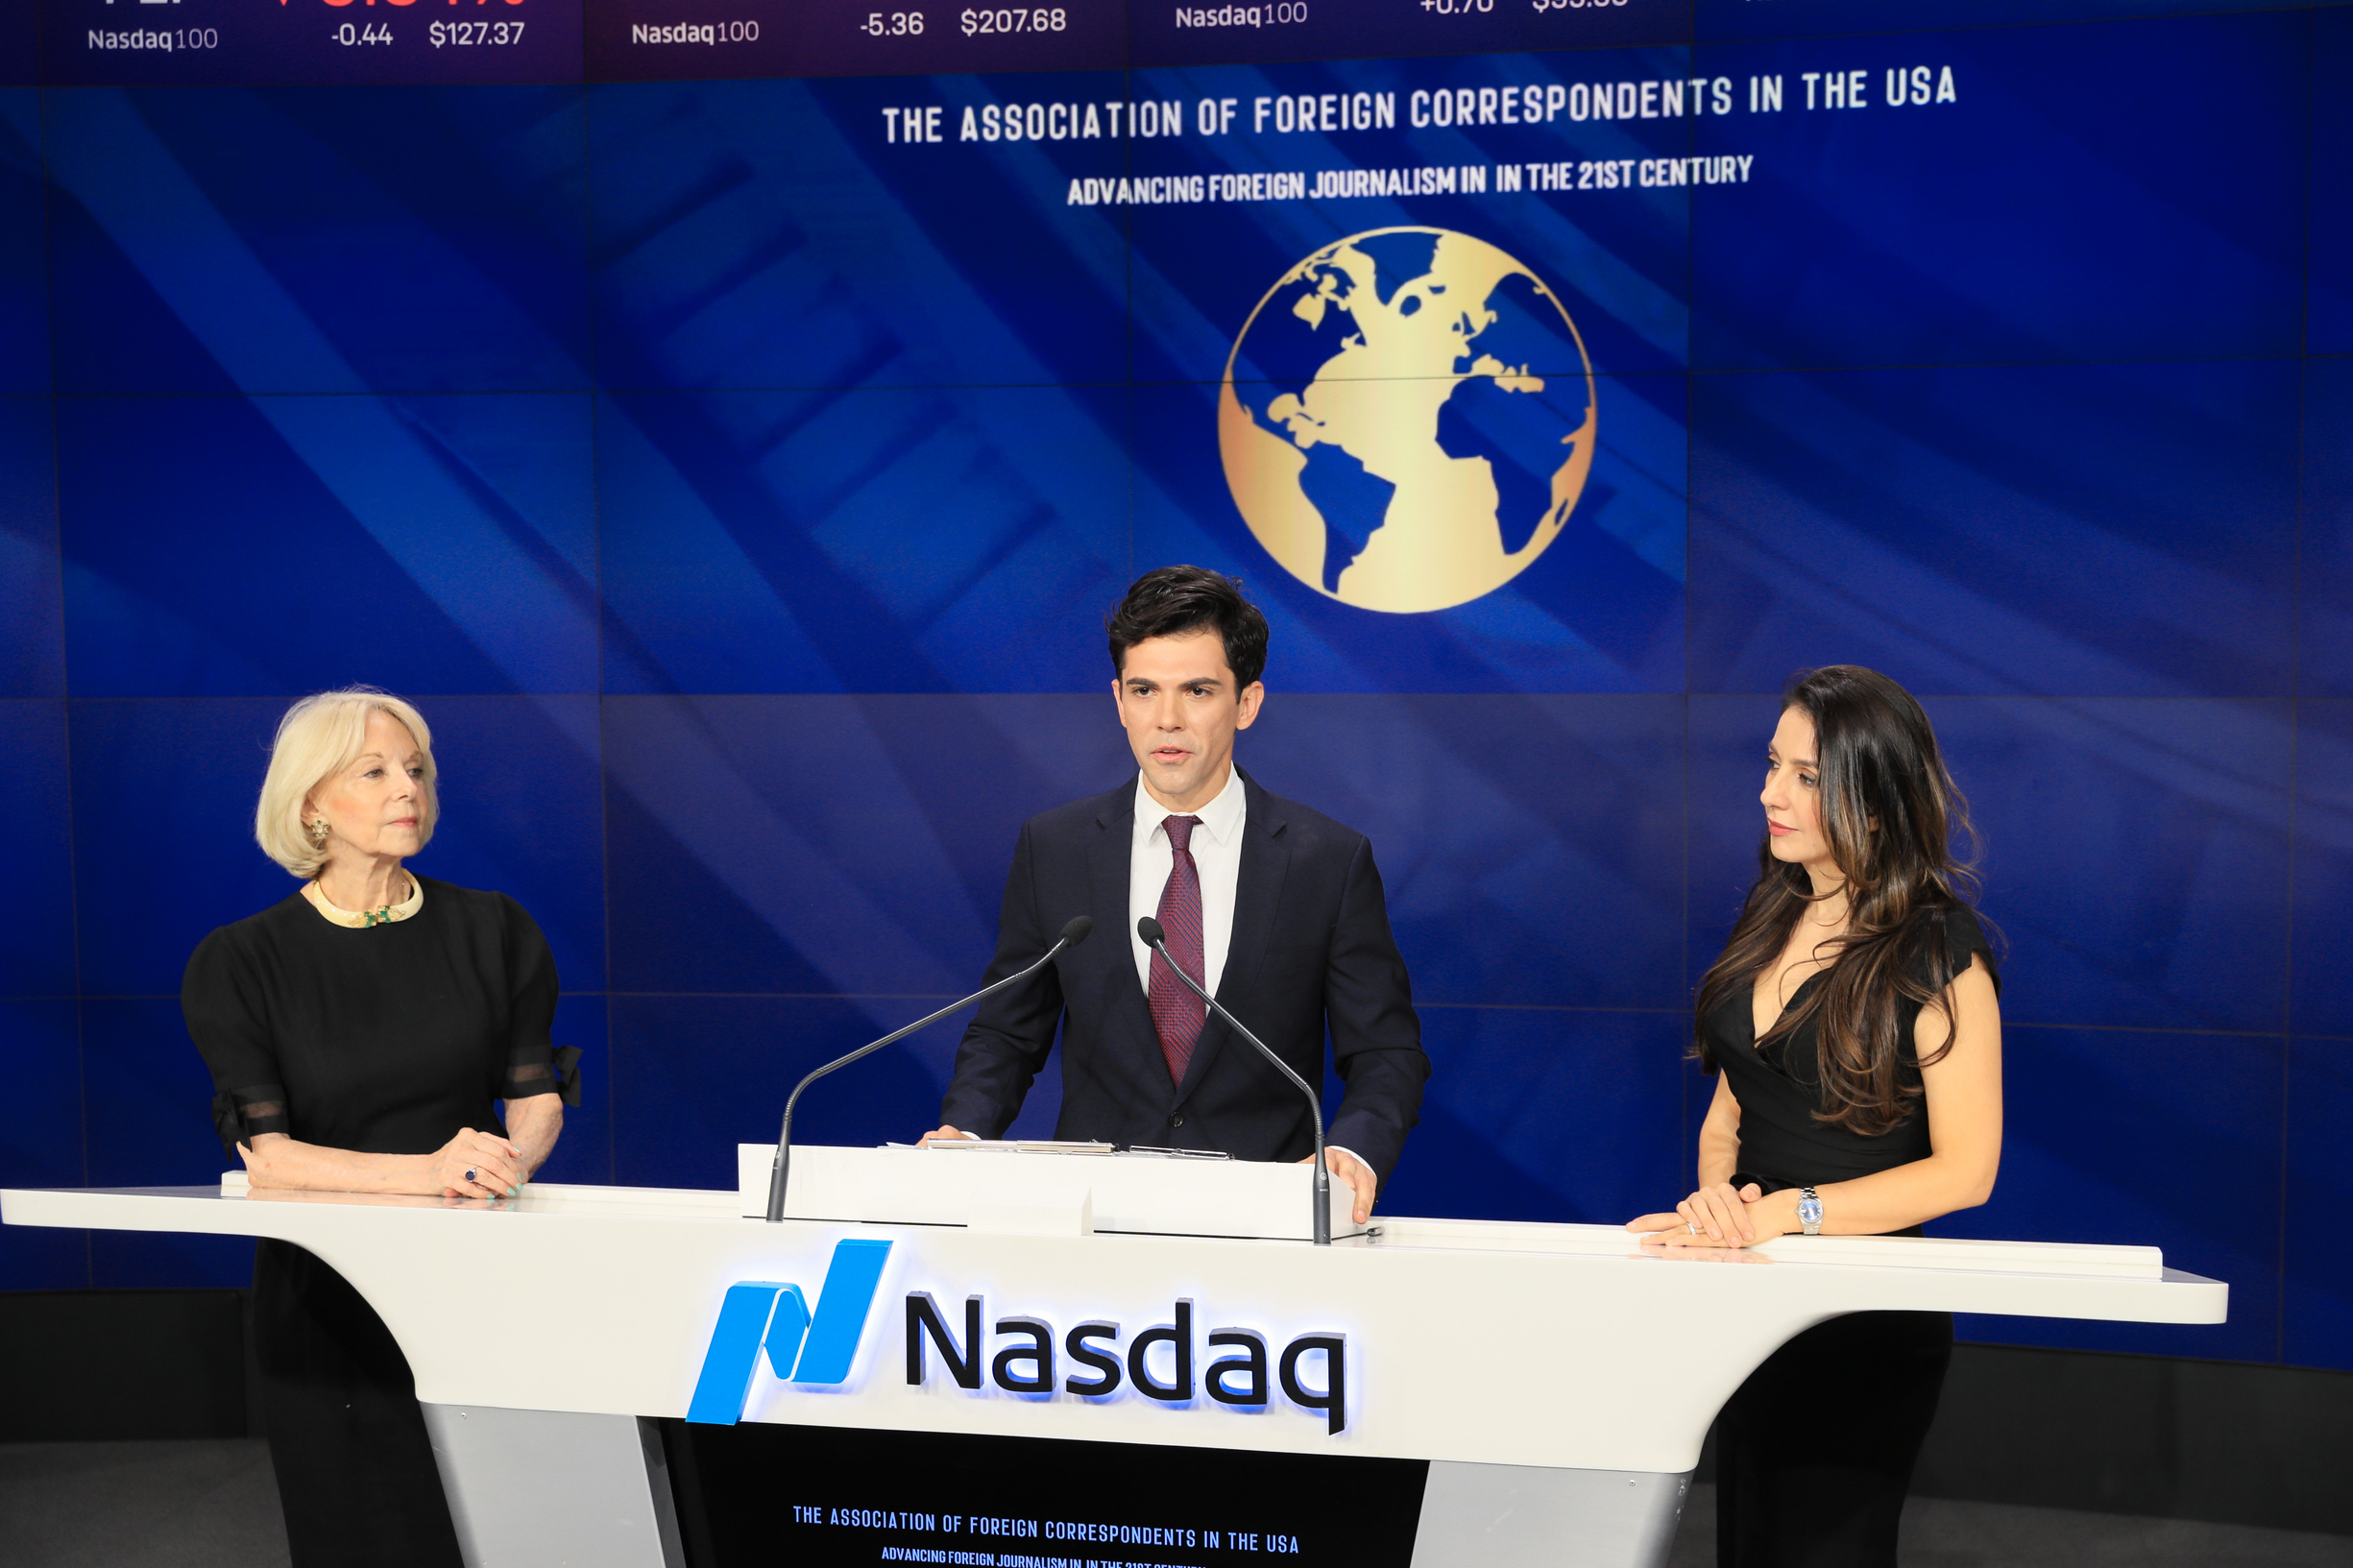 The AFC President, Thanos Dimadis speaks at  Nasdaq Closing Bell Ceremony  representing the Association of Foreign Correspondents.  Watch the video